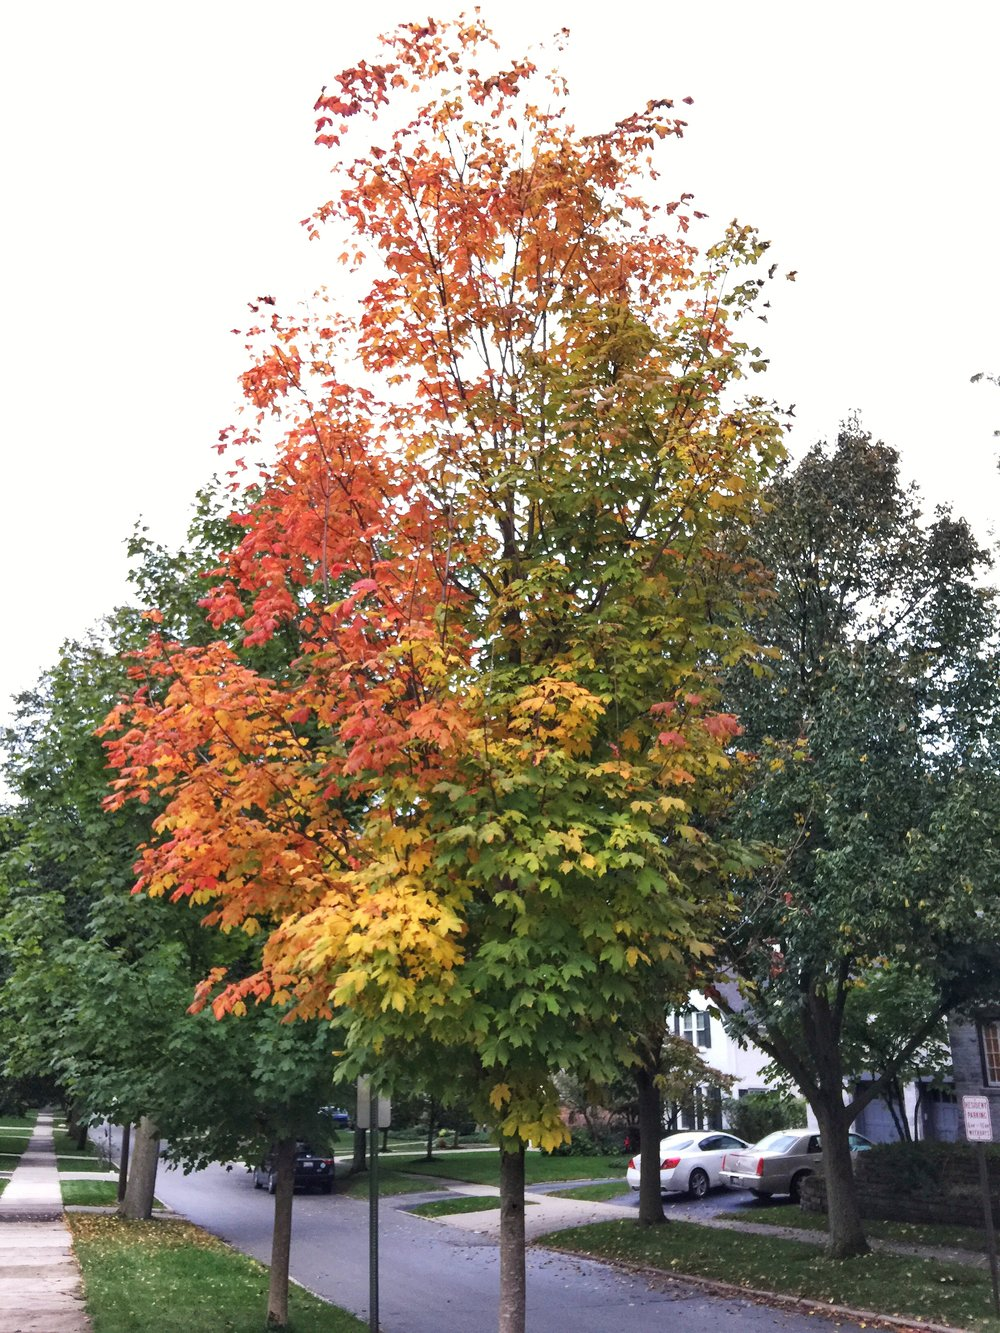 Snapped this picture on our walk last night, the leaves are just starting to change.  I've never seen a tree that captures all colors.